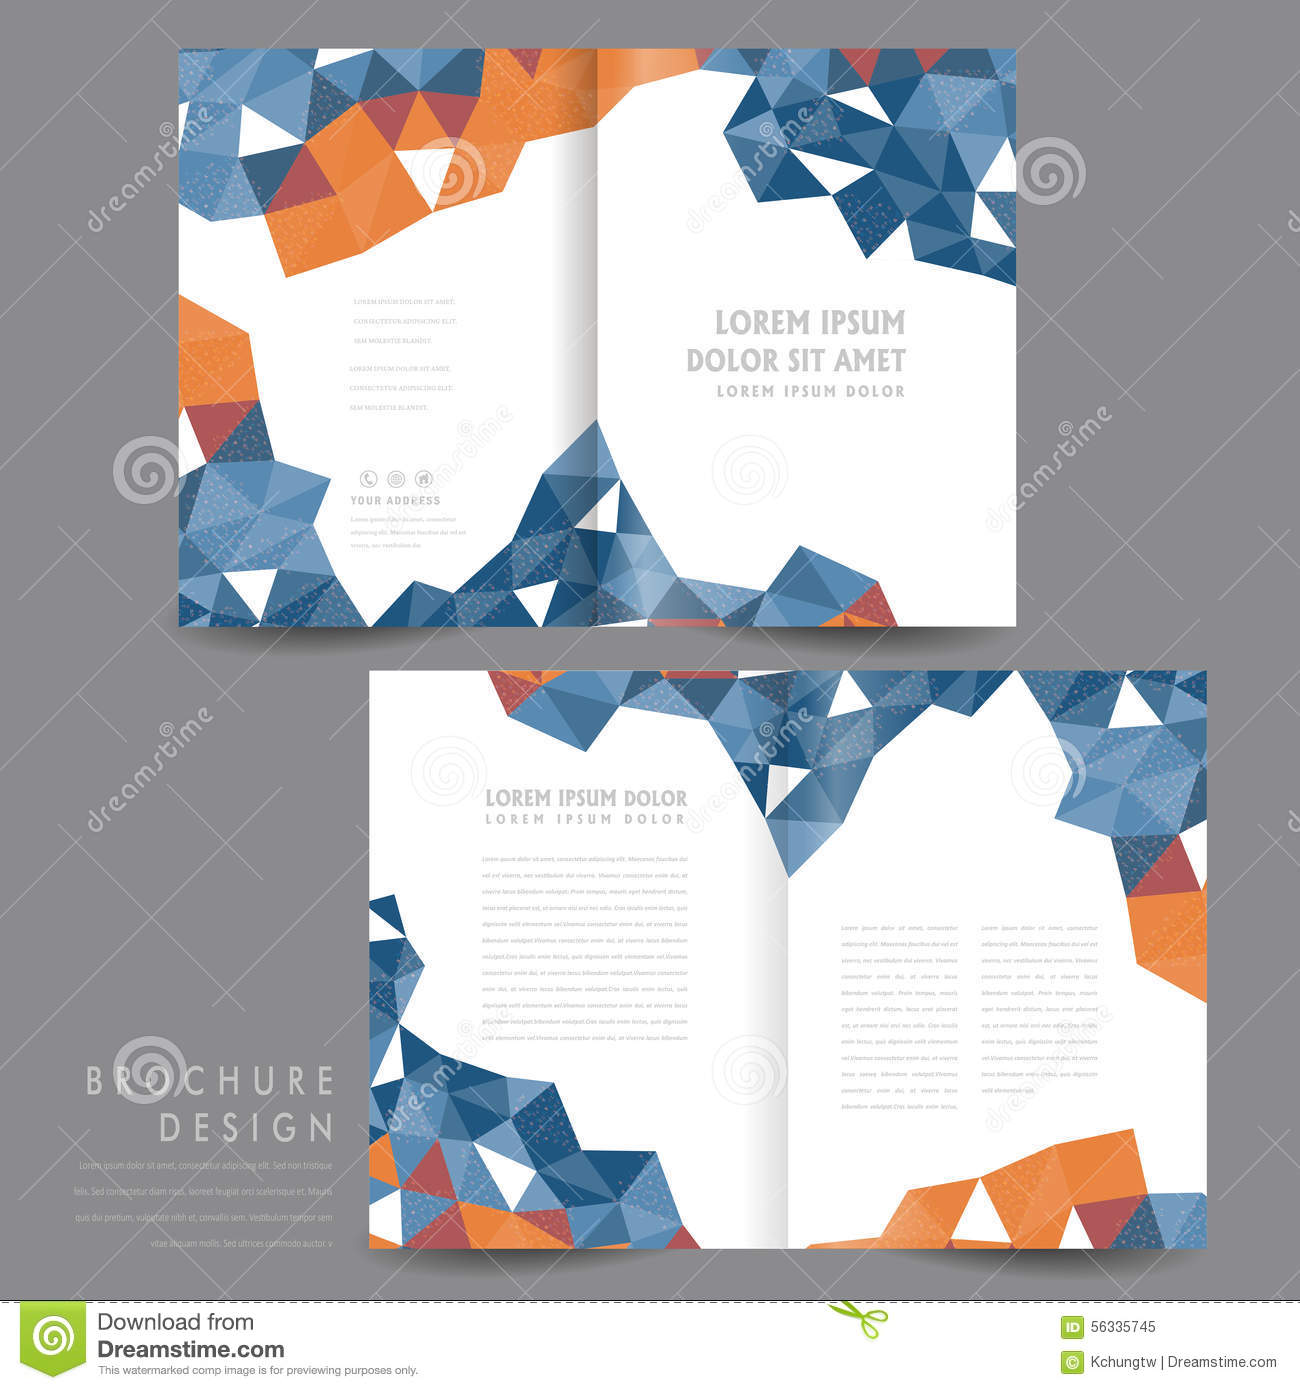 Attractive Halffold Brochure Template Design Stock Vector - Single fold brochure template